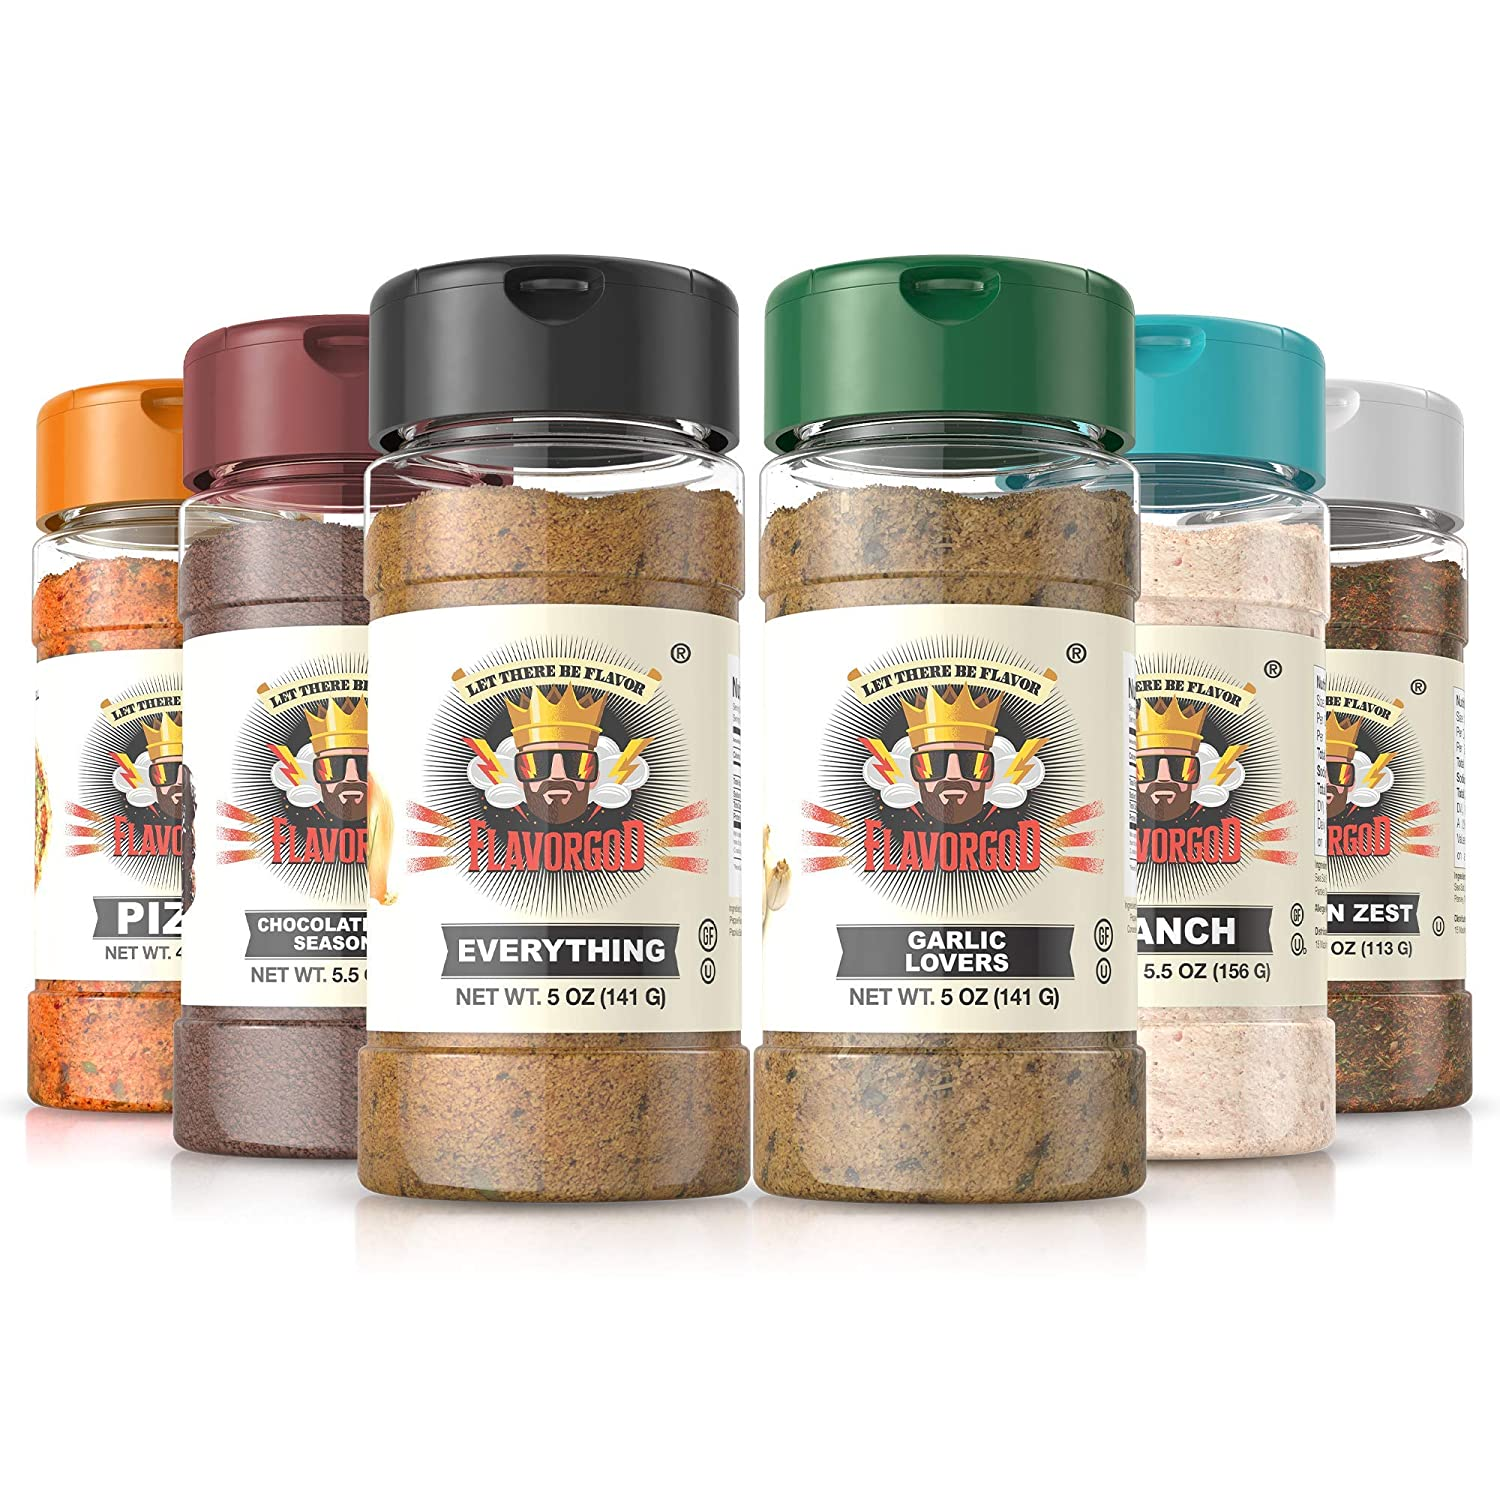 Flavor God Seasonings- Meal Prep Combo Pack   Pack of 6- 5oz   Healthy Vegan Seasonings   Great for Added Flavor  No Calories, No Dairy, No MSG, No Fat, No Gluten